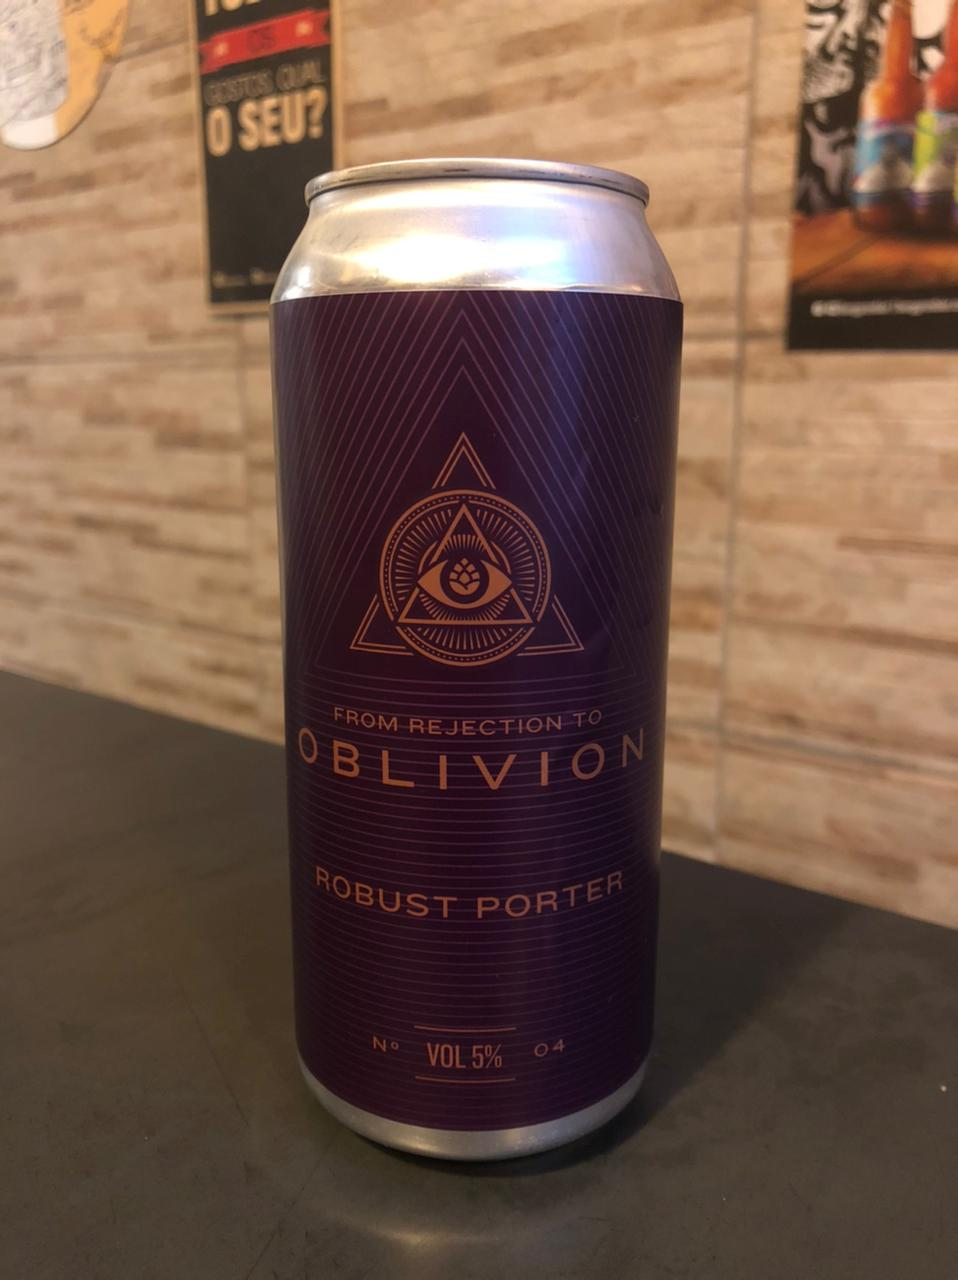 Dogma From Rejection To Oblivion IV Lata 473ml - Robust Porter